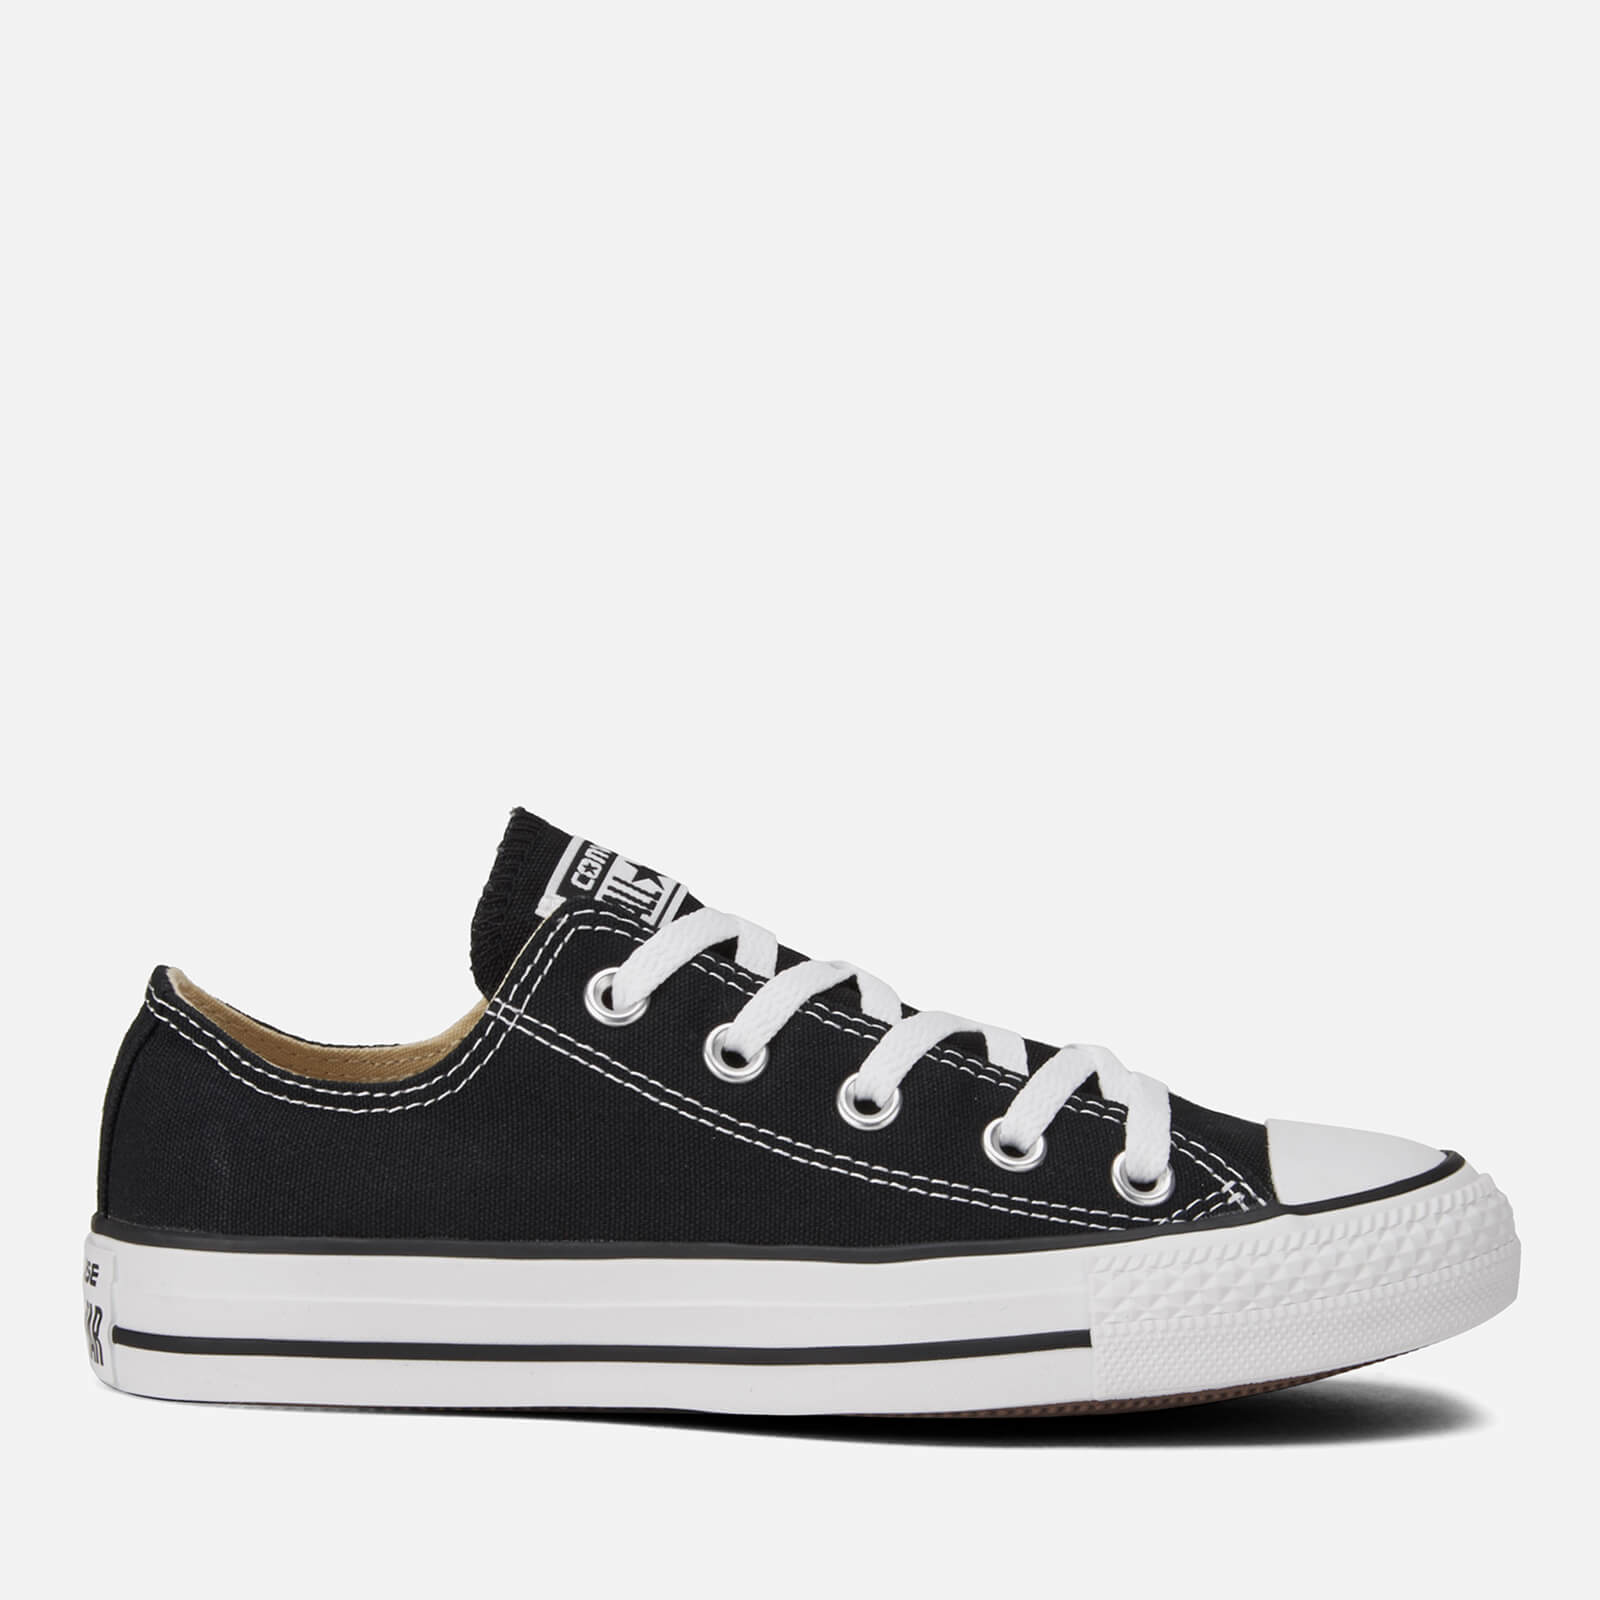 Converse Chuck Taylor All Star Ox Trainers Black Uk 11